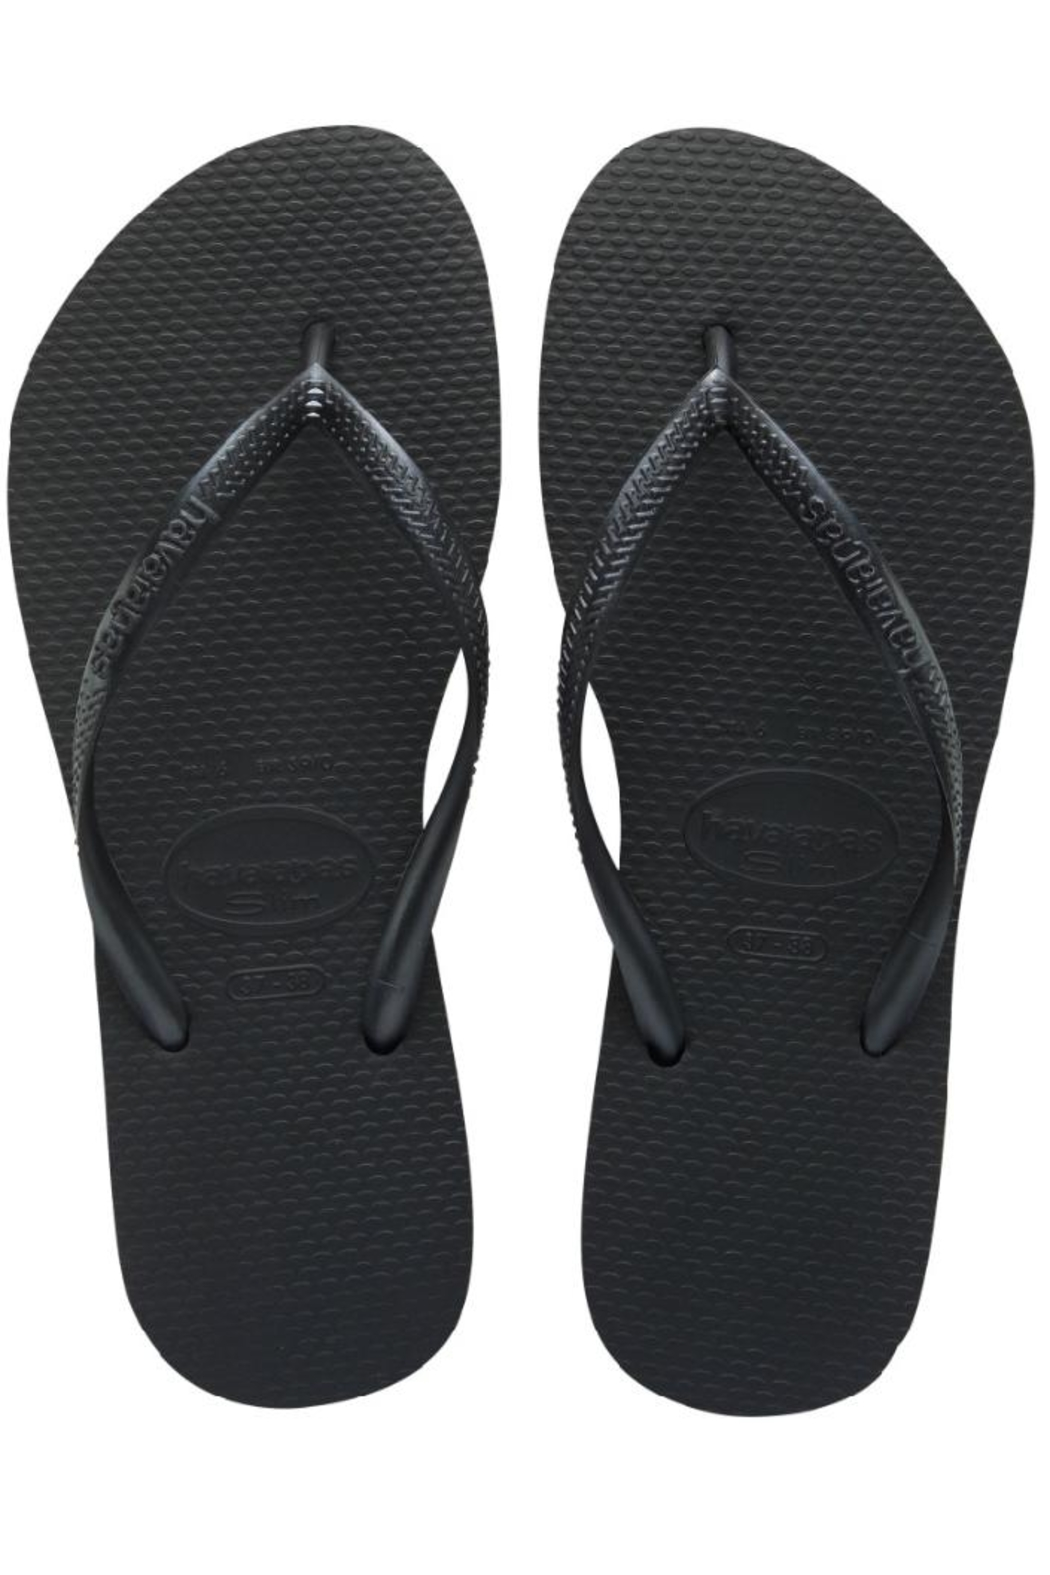 9736516cbb4732 Havaianas Black Sandal from Miami by Allie   Chica — Shoptiques